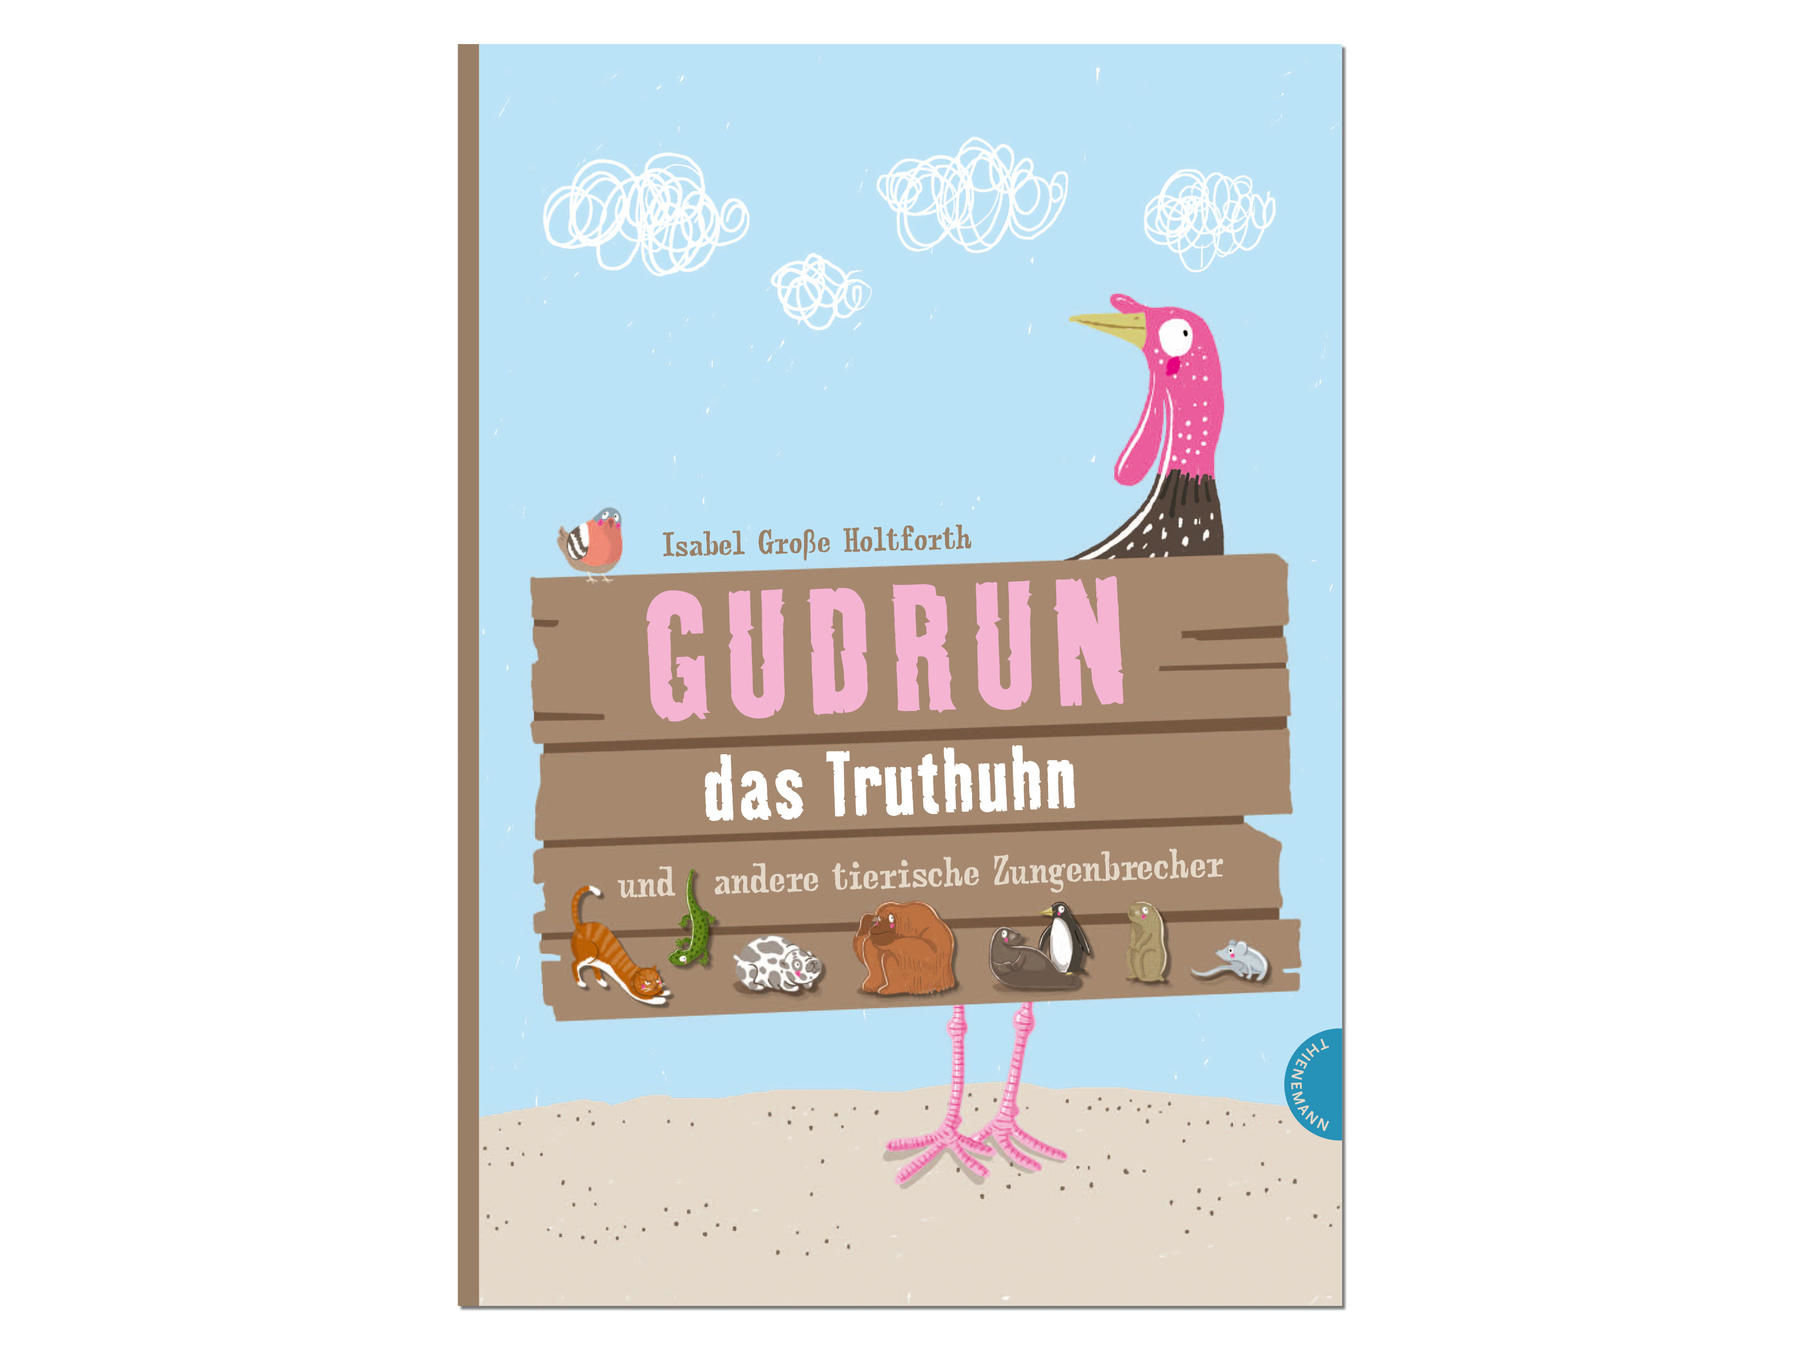 Gudrun das Truthuhn, Bilderbuch, Illustration Isabel Große Holtforth